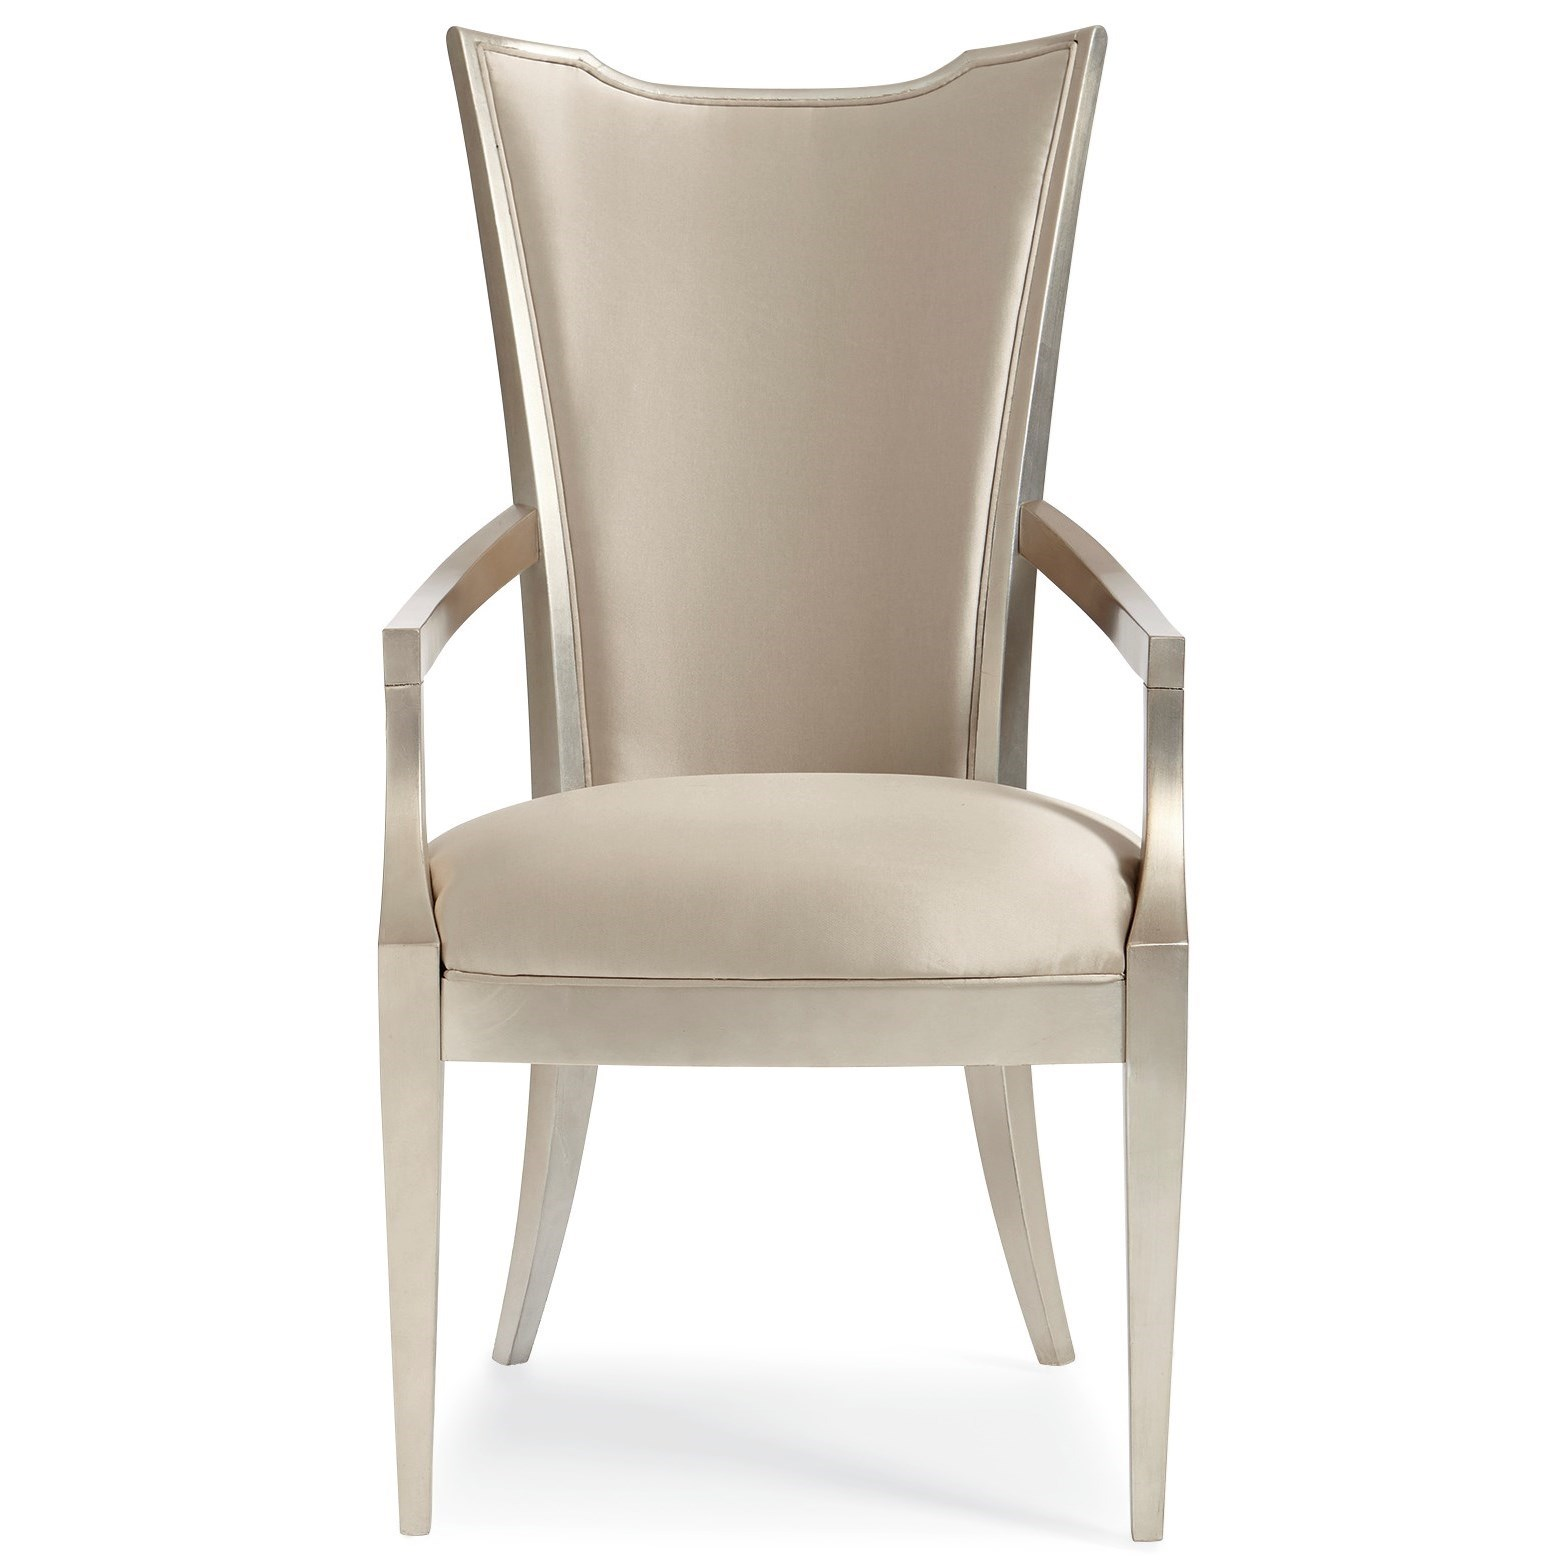 Caracole Classic Very Appealing Dining Arm Chair by Caracole at Baer's Furniture